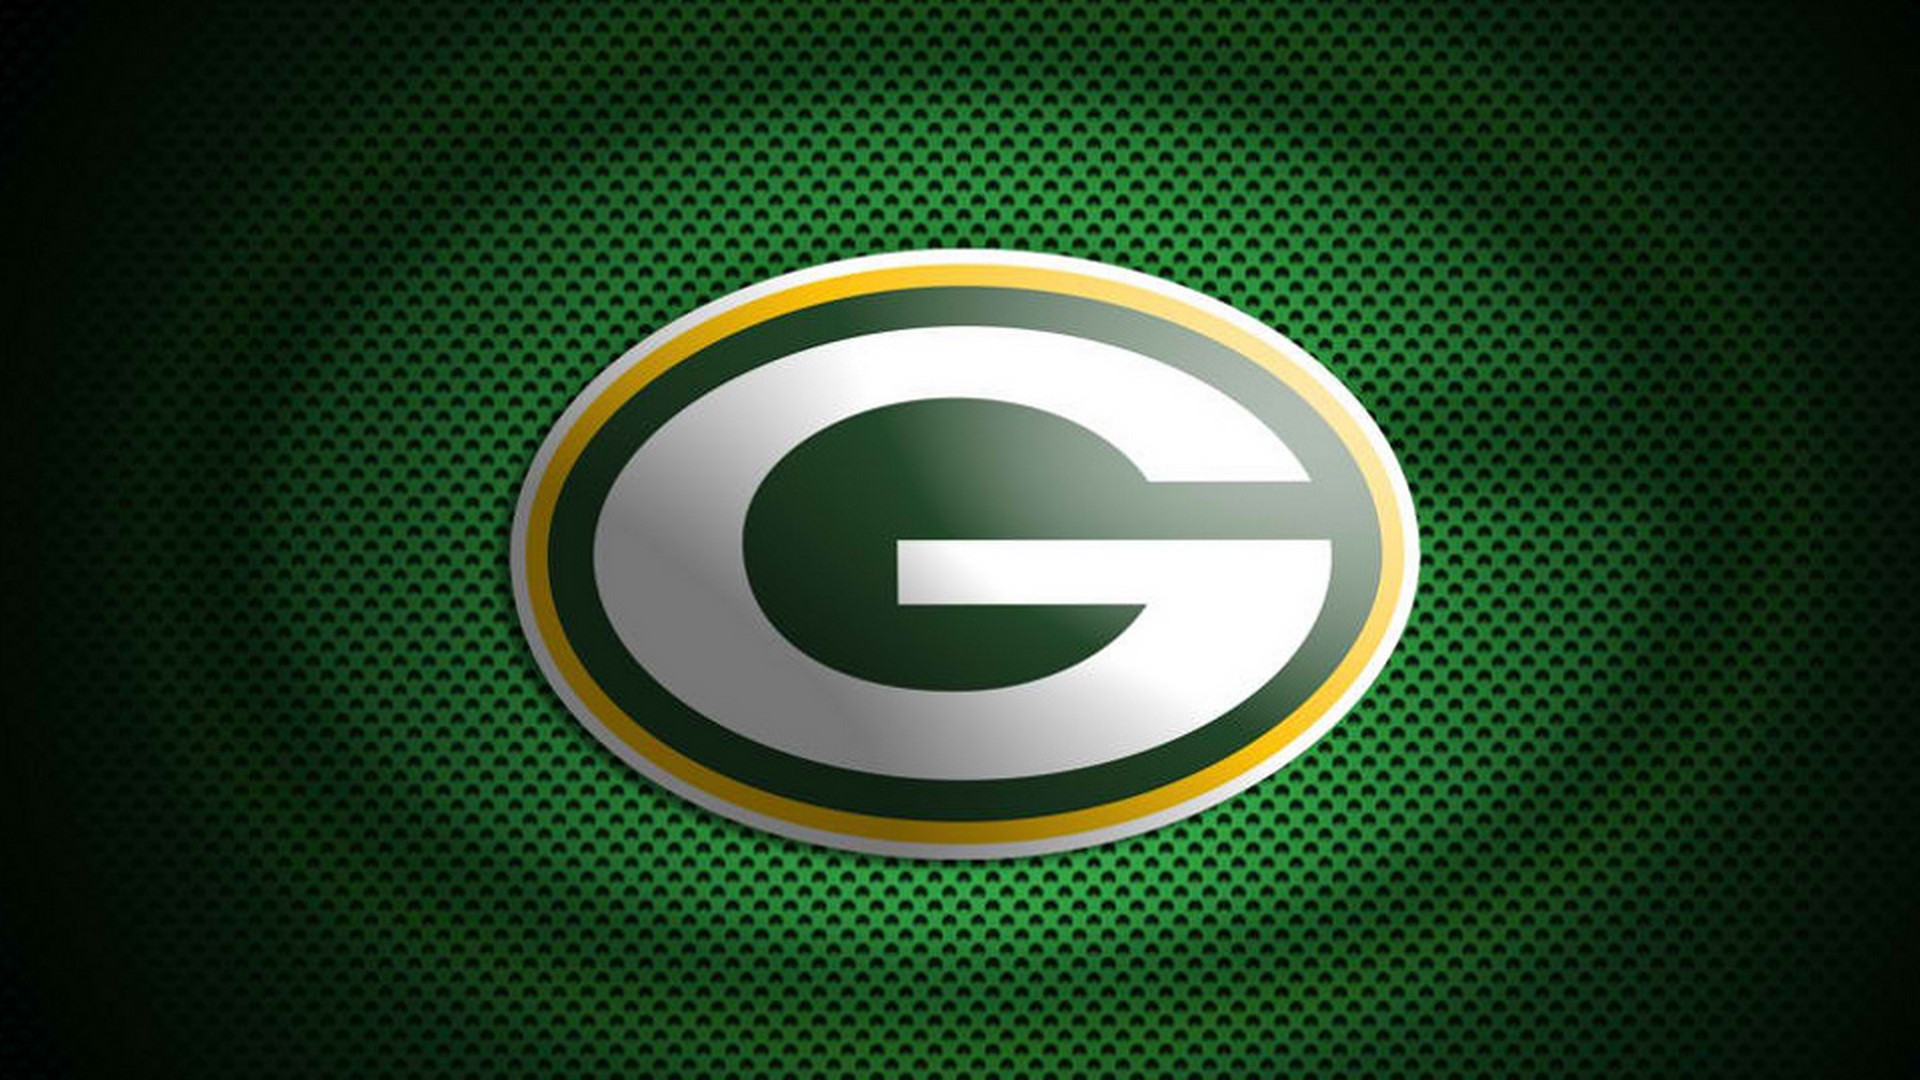 Nfl Wallpaper Hd Green Bay Packers For Pc Wallpaper 2019 Nfl Football